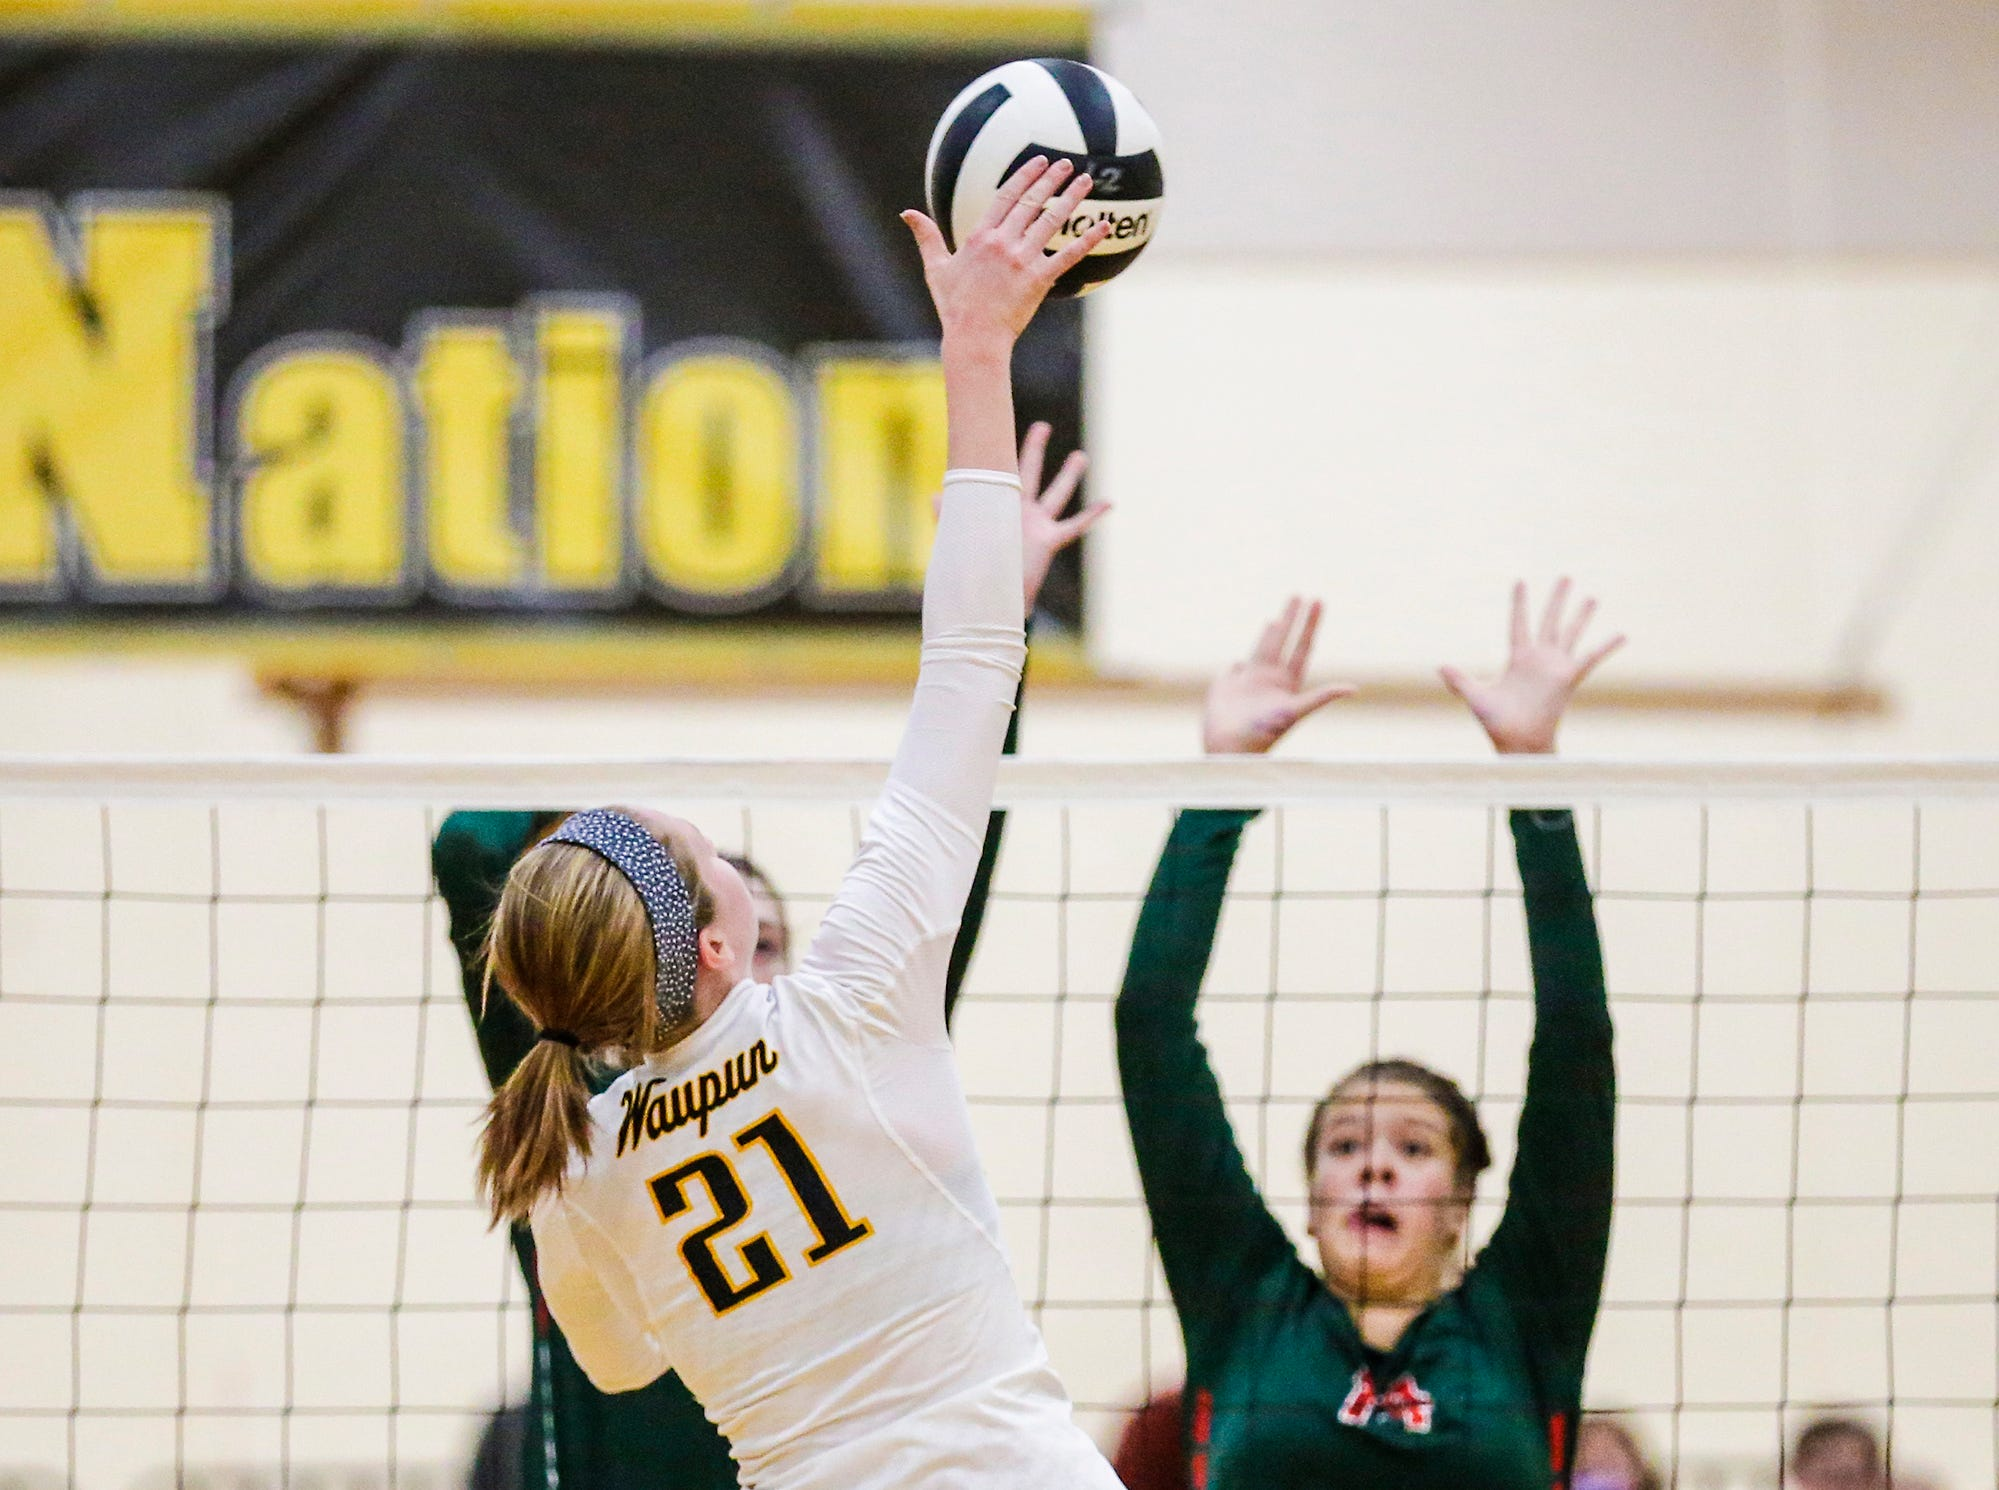 Waupun High School volleyball's Claire Bresser hits the ball against Berlin High School during their WIAA regional quarter-final playoff game Tuesday, Oct. 16, 2018, in Waupun.